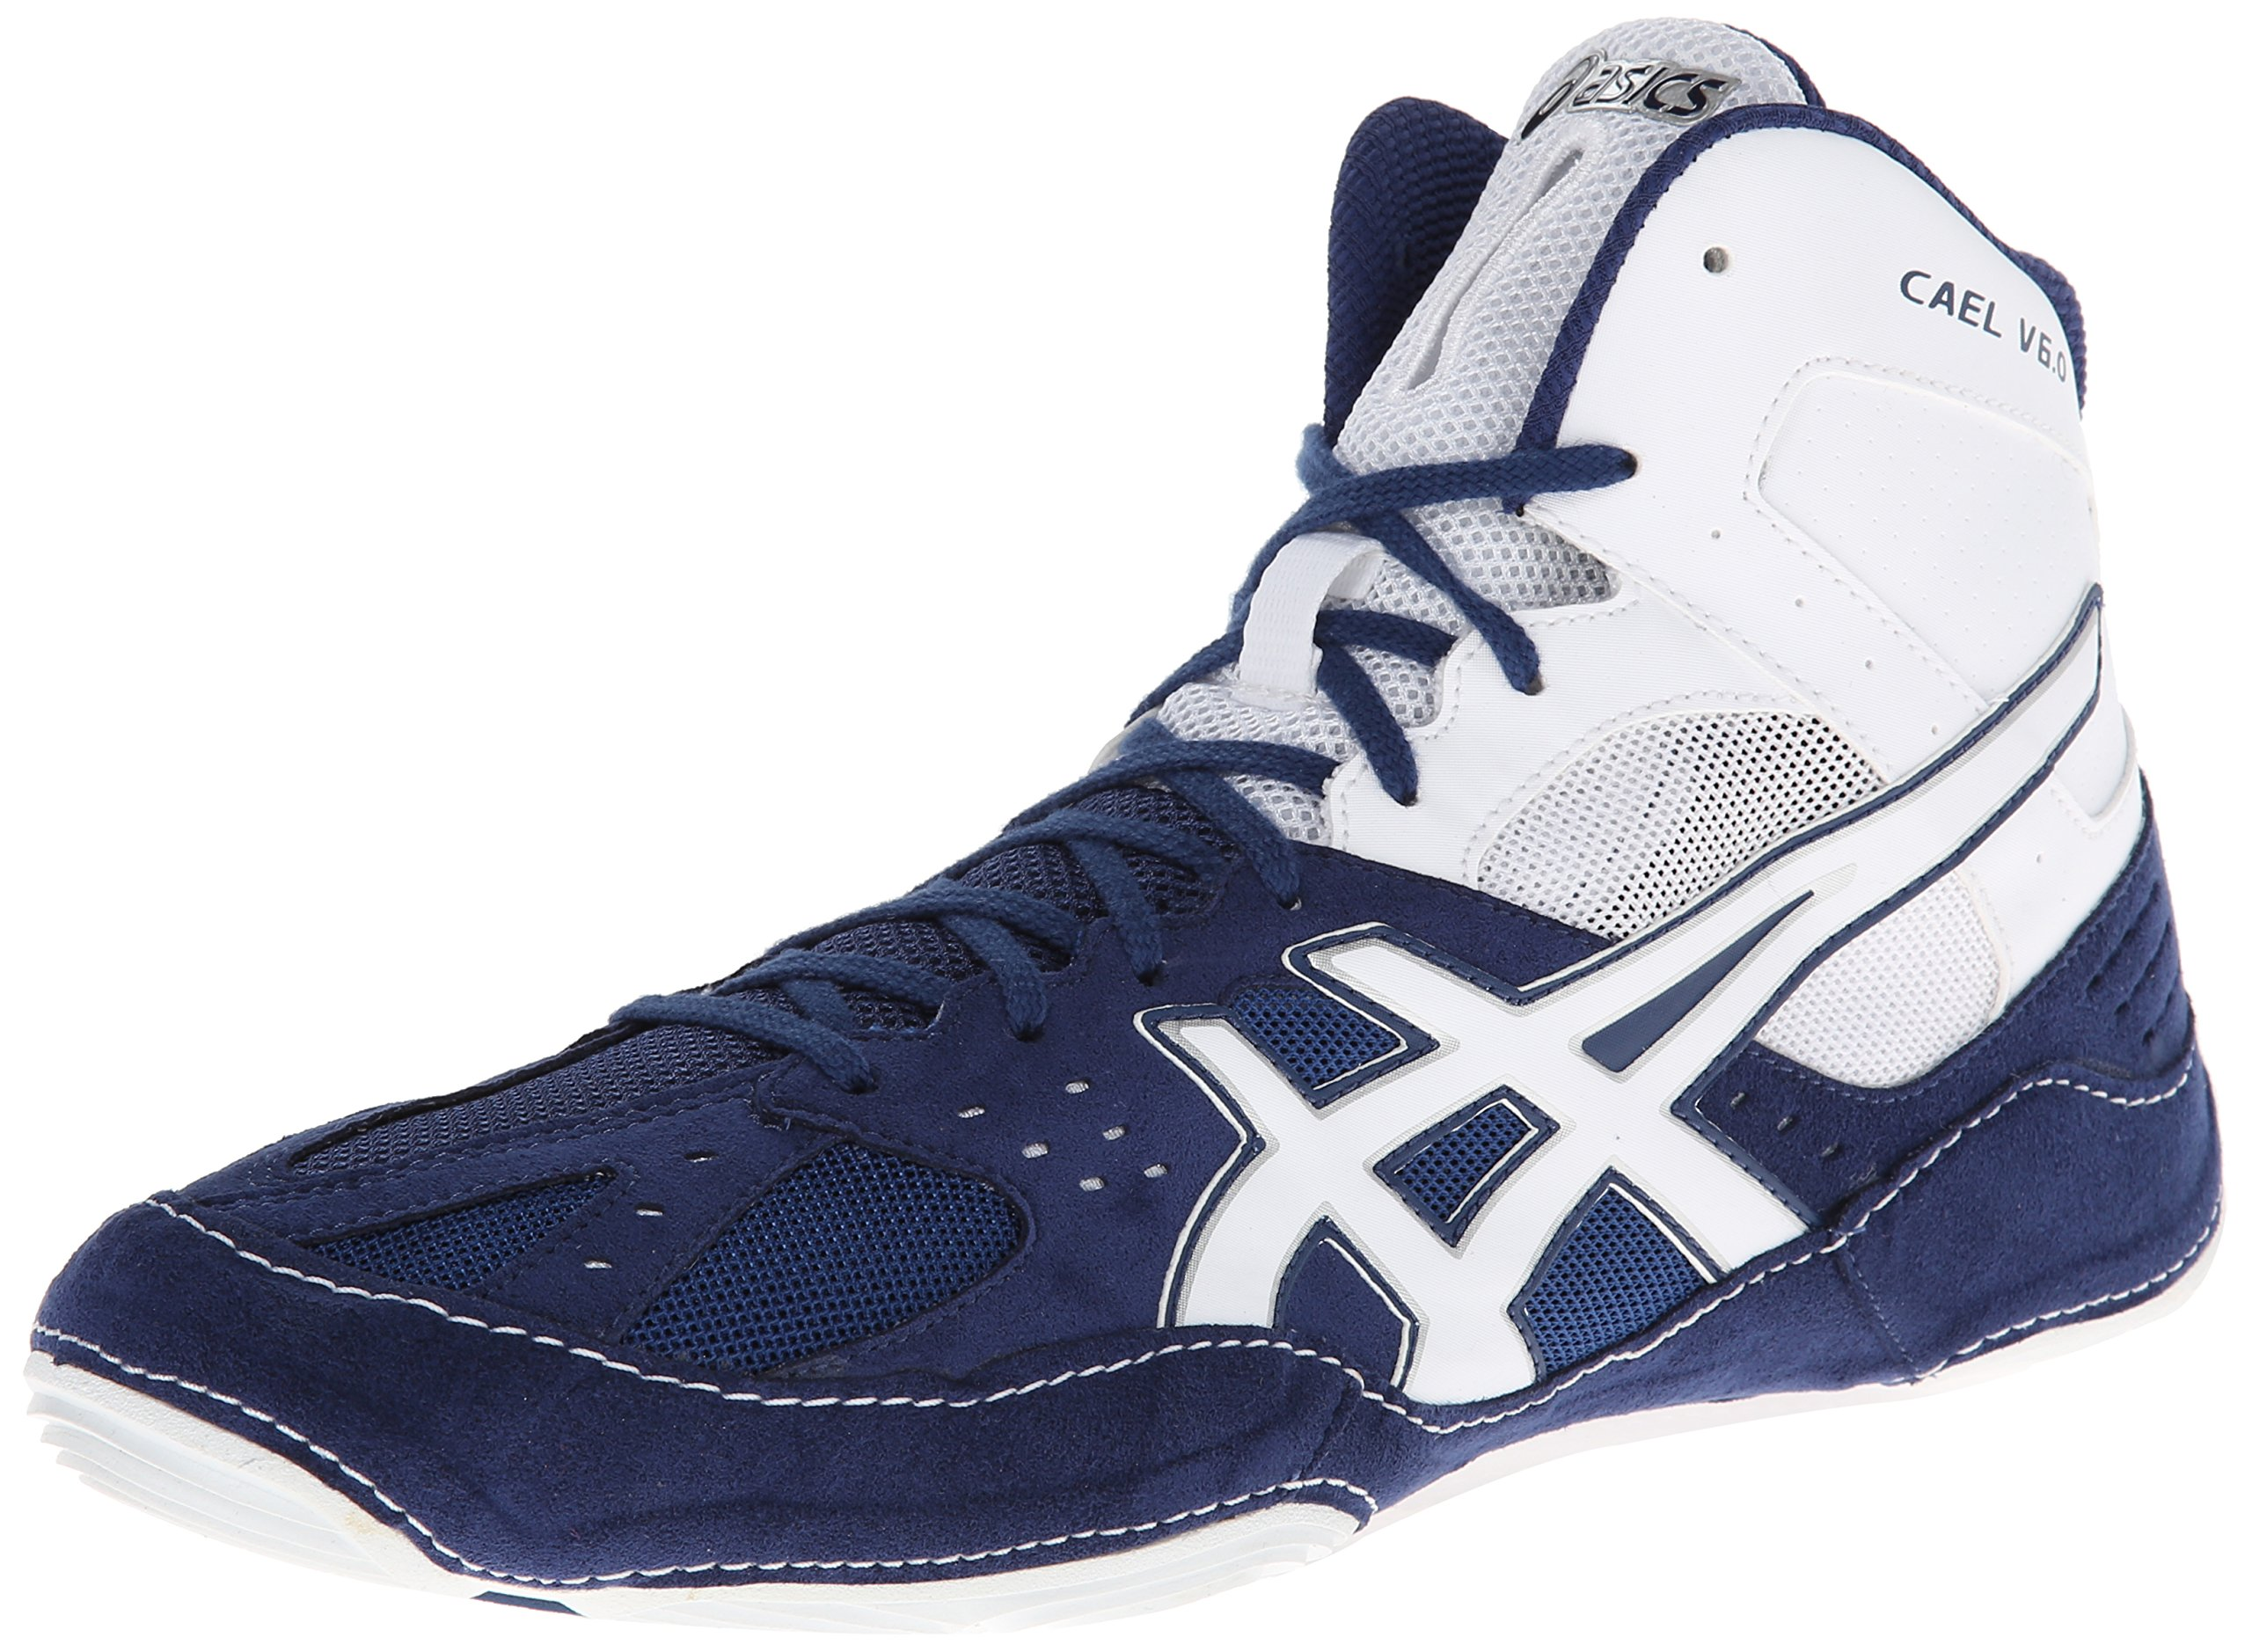 Asics Men's Cael V6.0 Wrestling Shoe,Navy/White,11 M US by ASICS